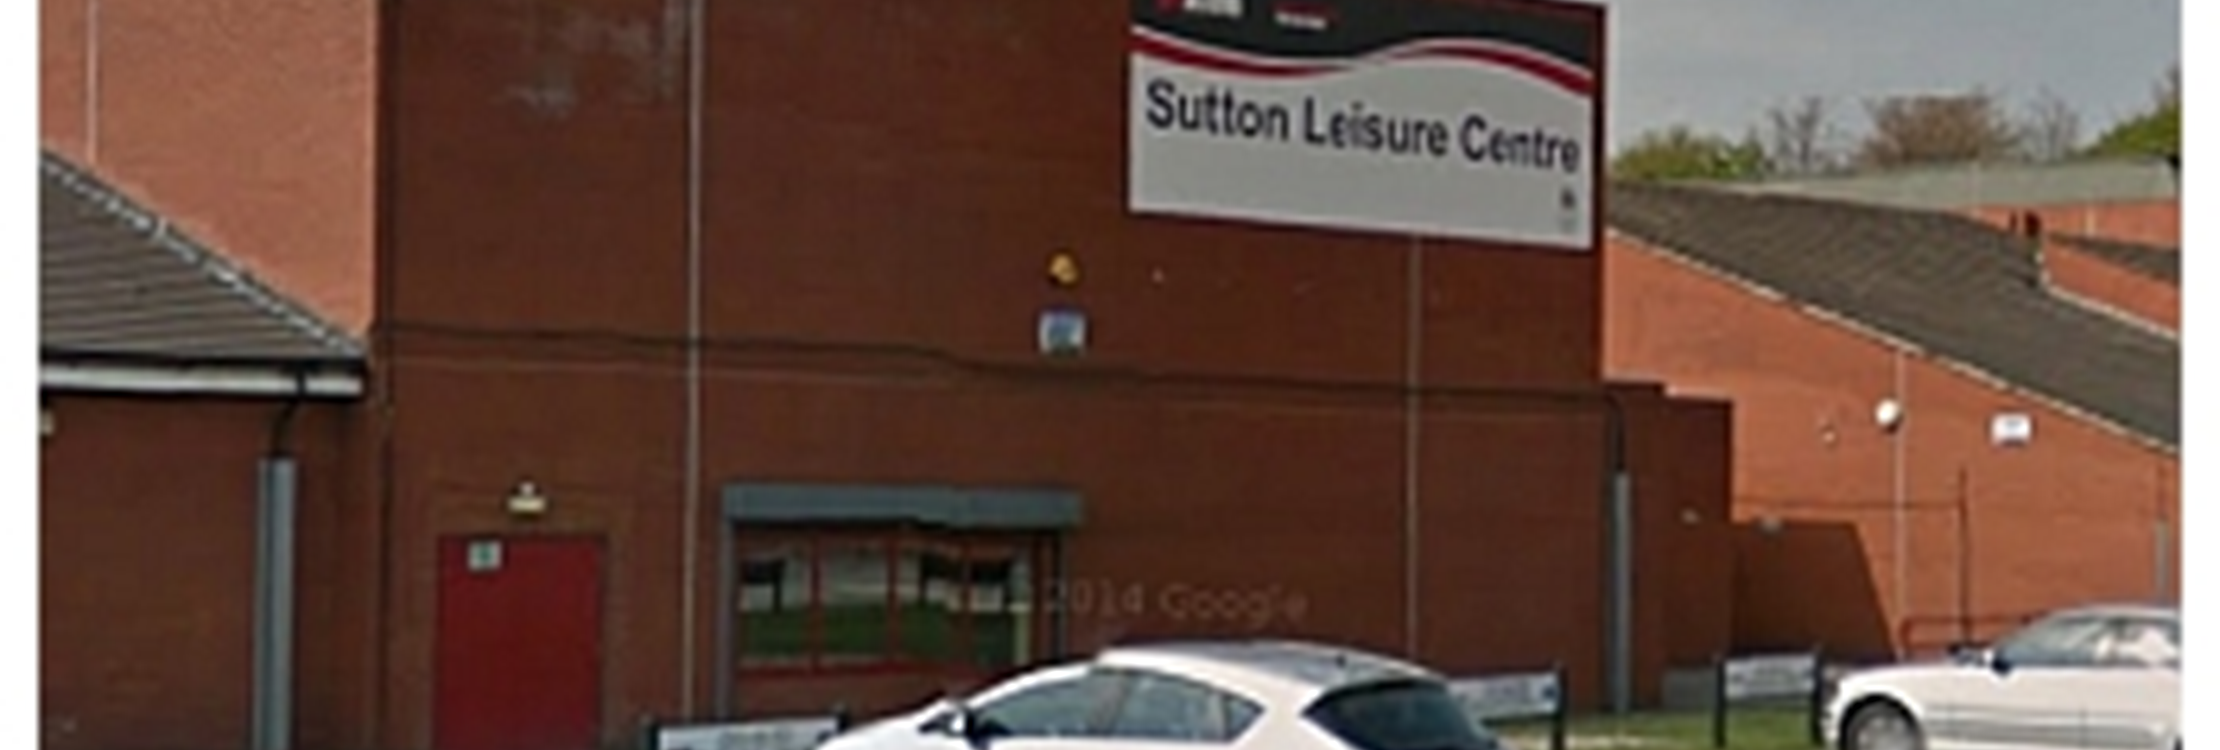 Sutton LC.png